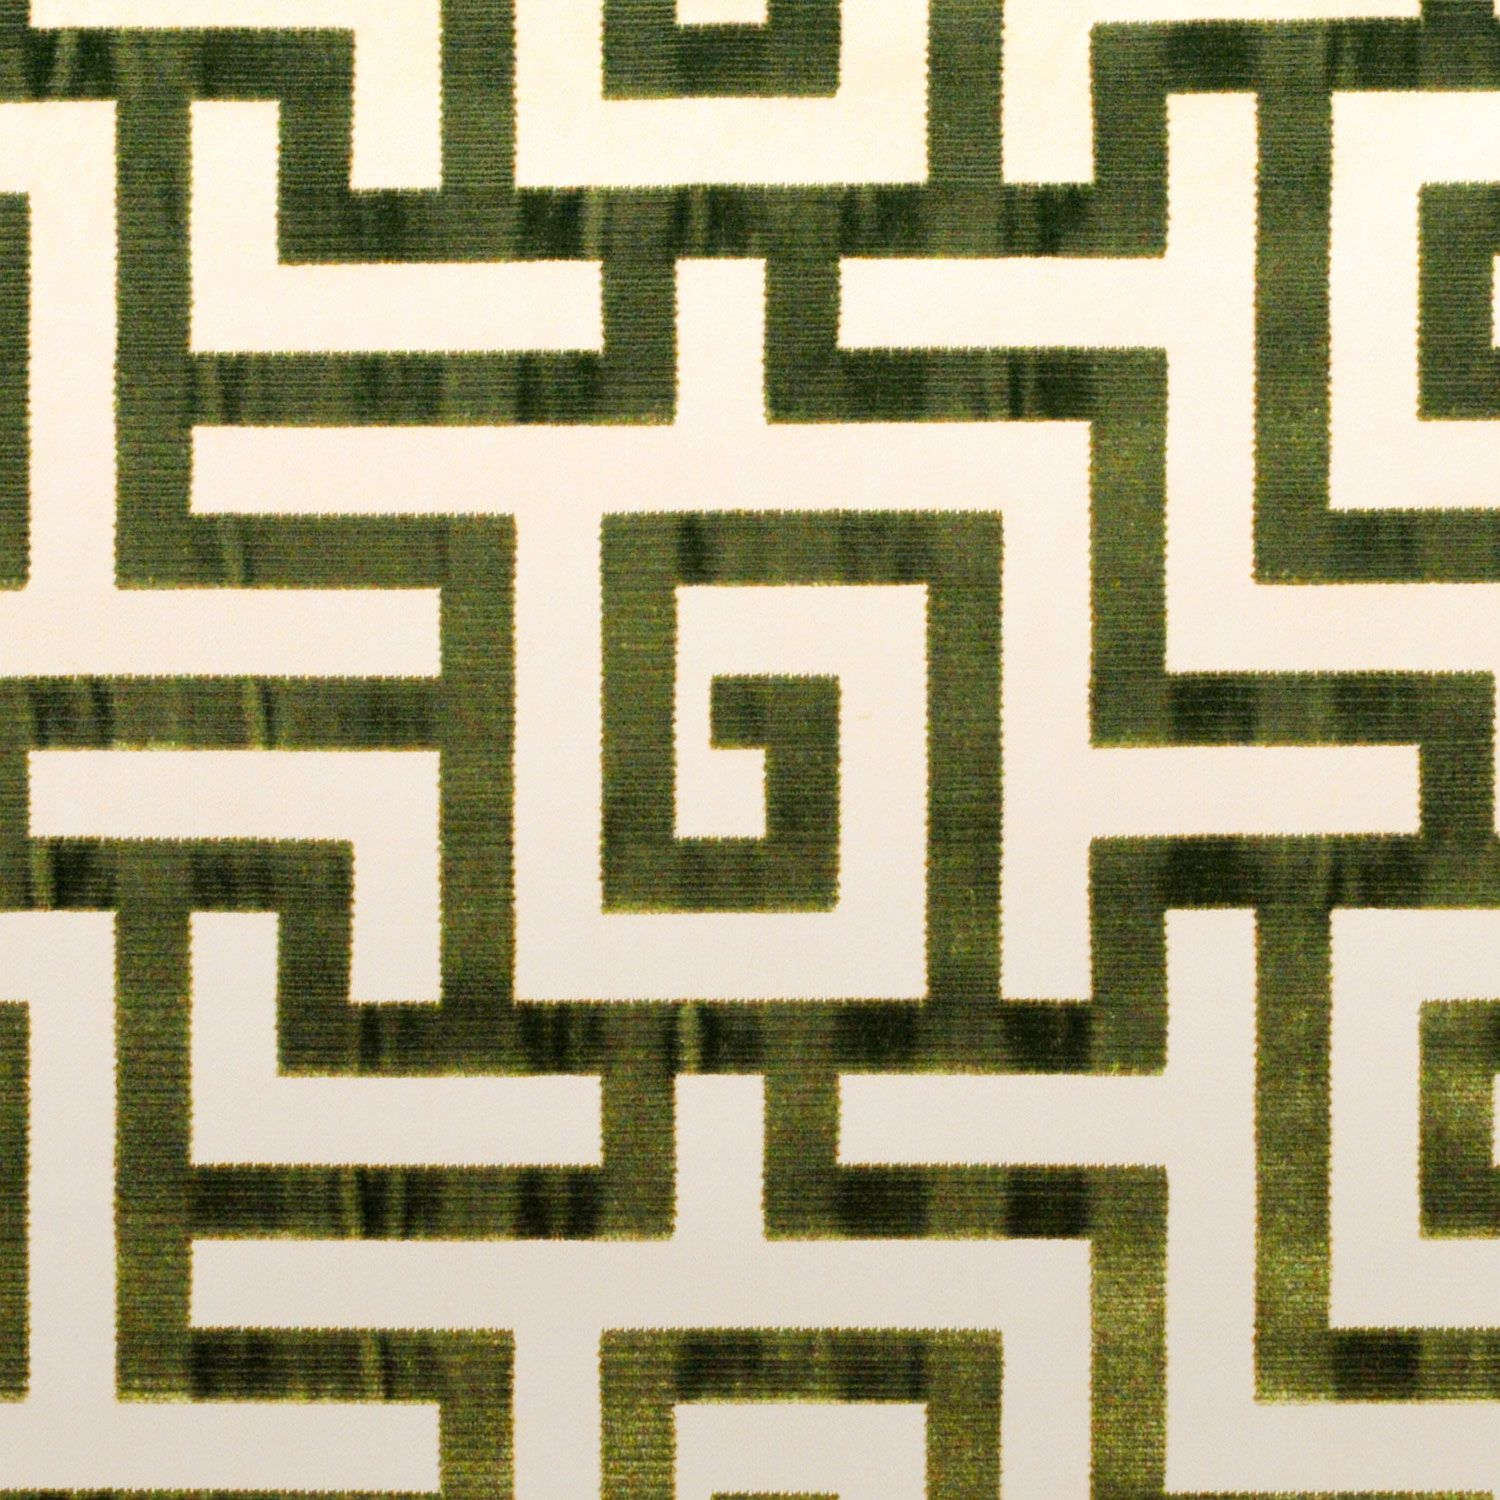 Clarence House Labyrinth silk and cotton velvet in green